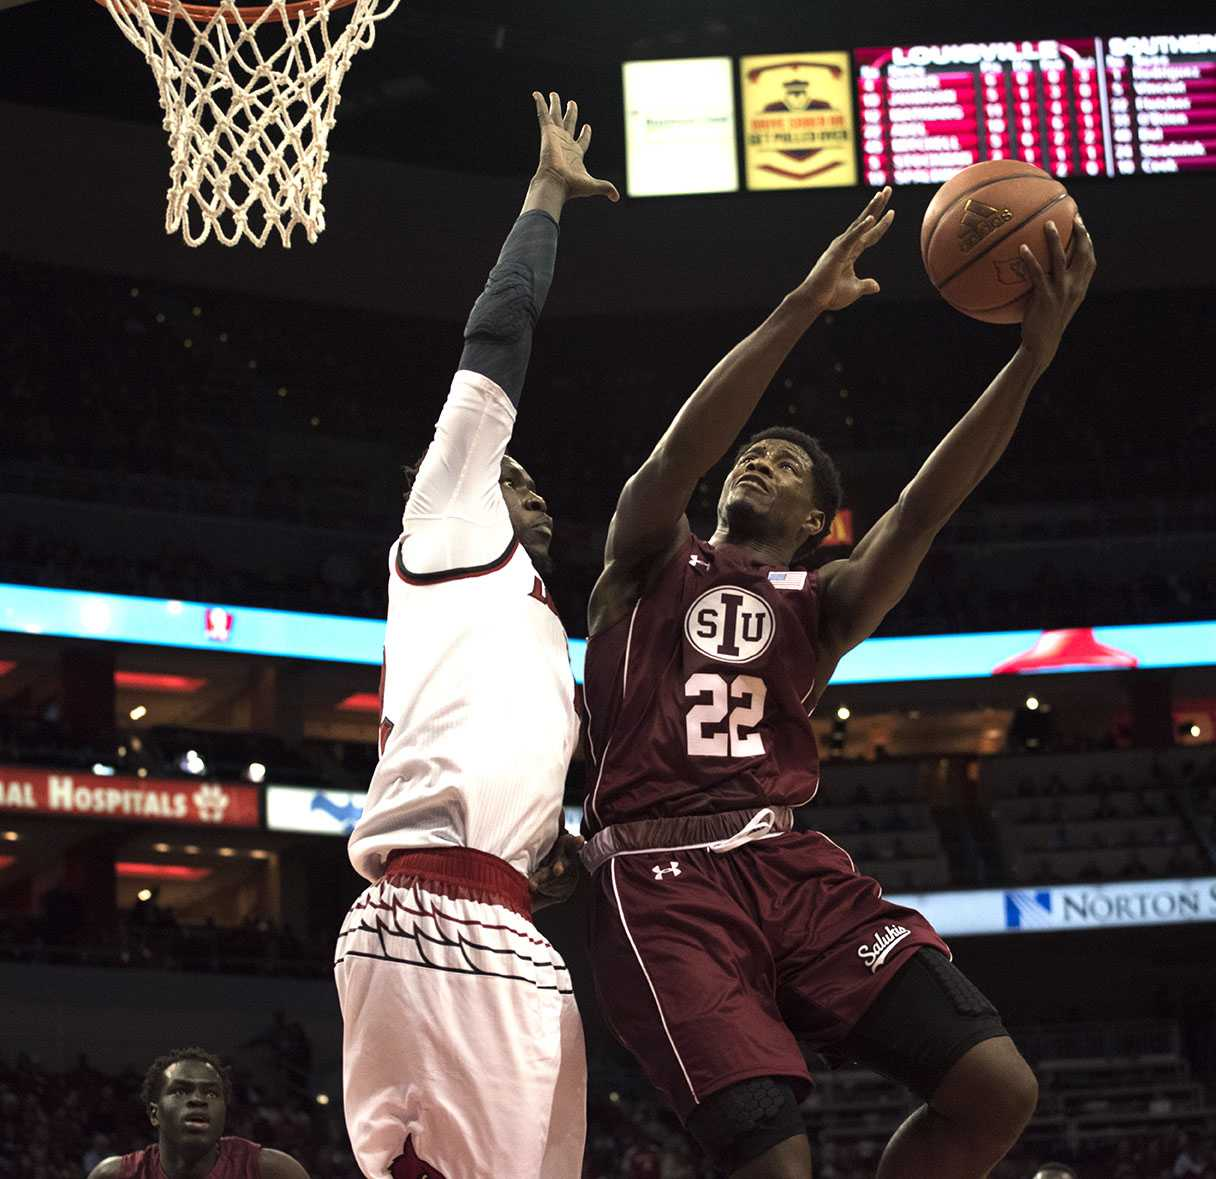 Sophomore guard Armon Fletcher attempts a layup Wednesday, Dec. 7, 2016, during the Salukis' 74-51 loss to the Cardinals at the KFC Yum! Center in Louisville, Ky. (Athena Chrysanthou | @Chrysant1Athena)